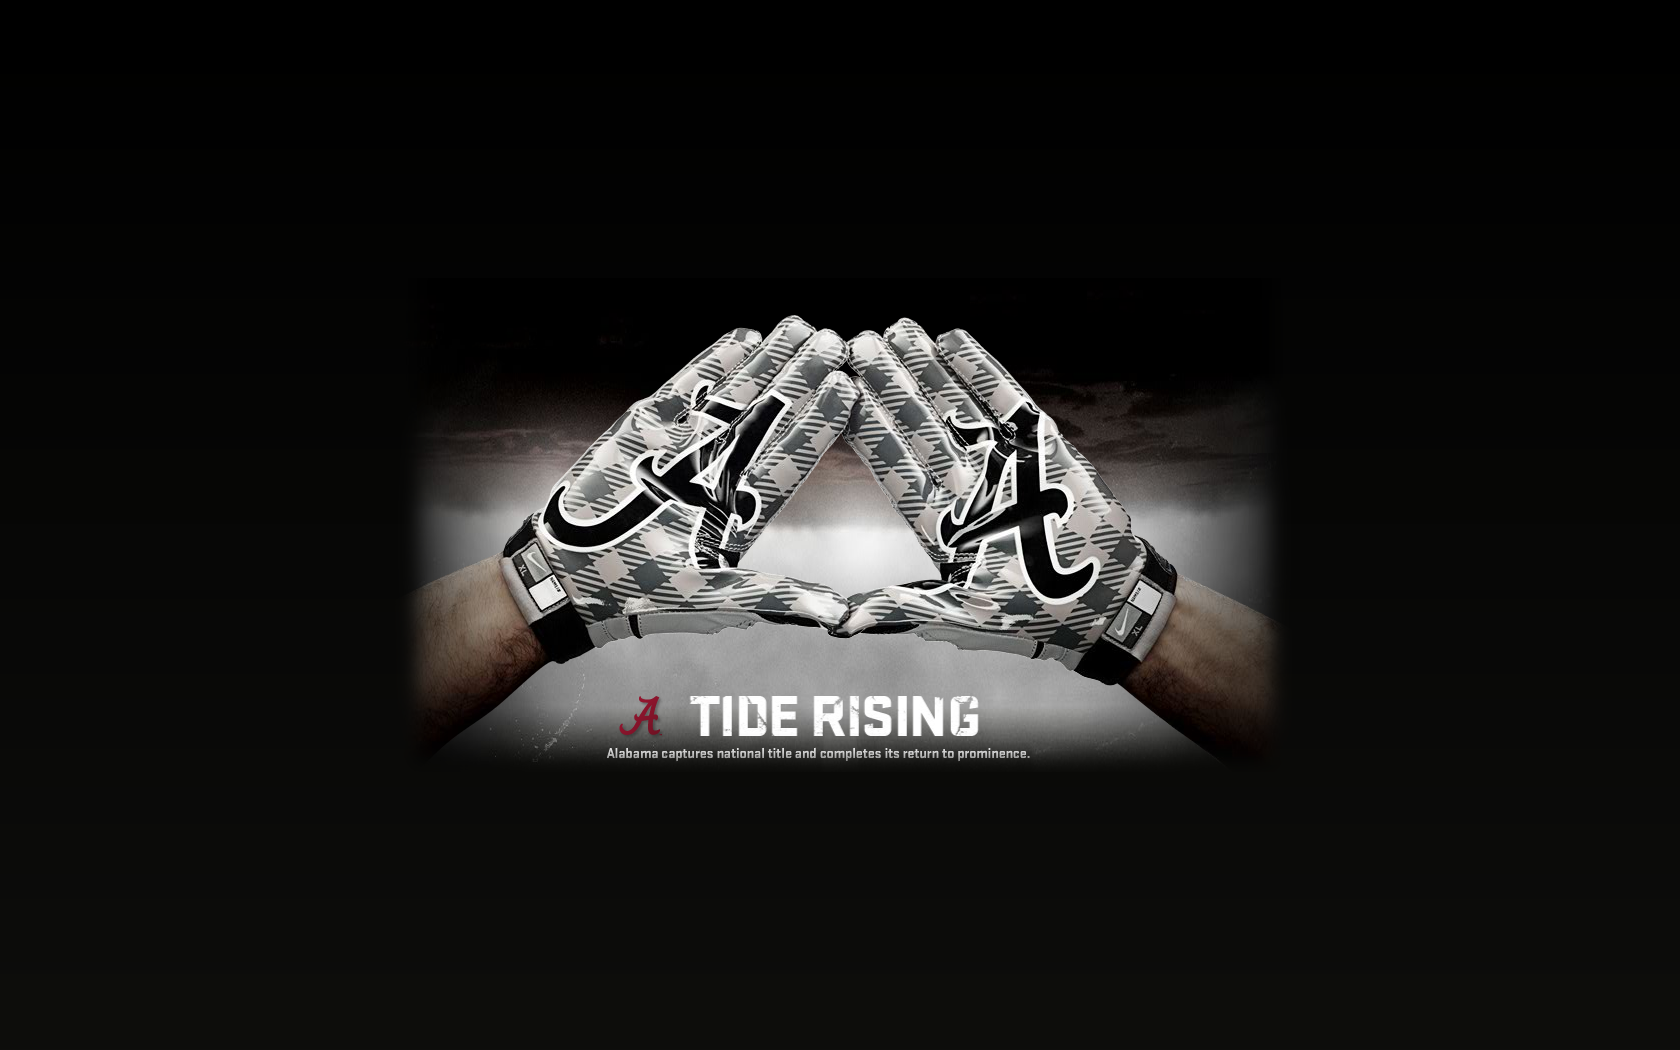 Cool Alabama Football Backgrounds Wallpa 911865 Png Images Pngio